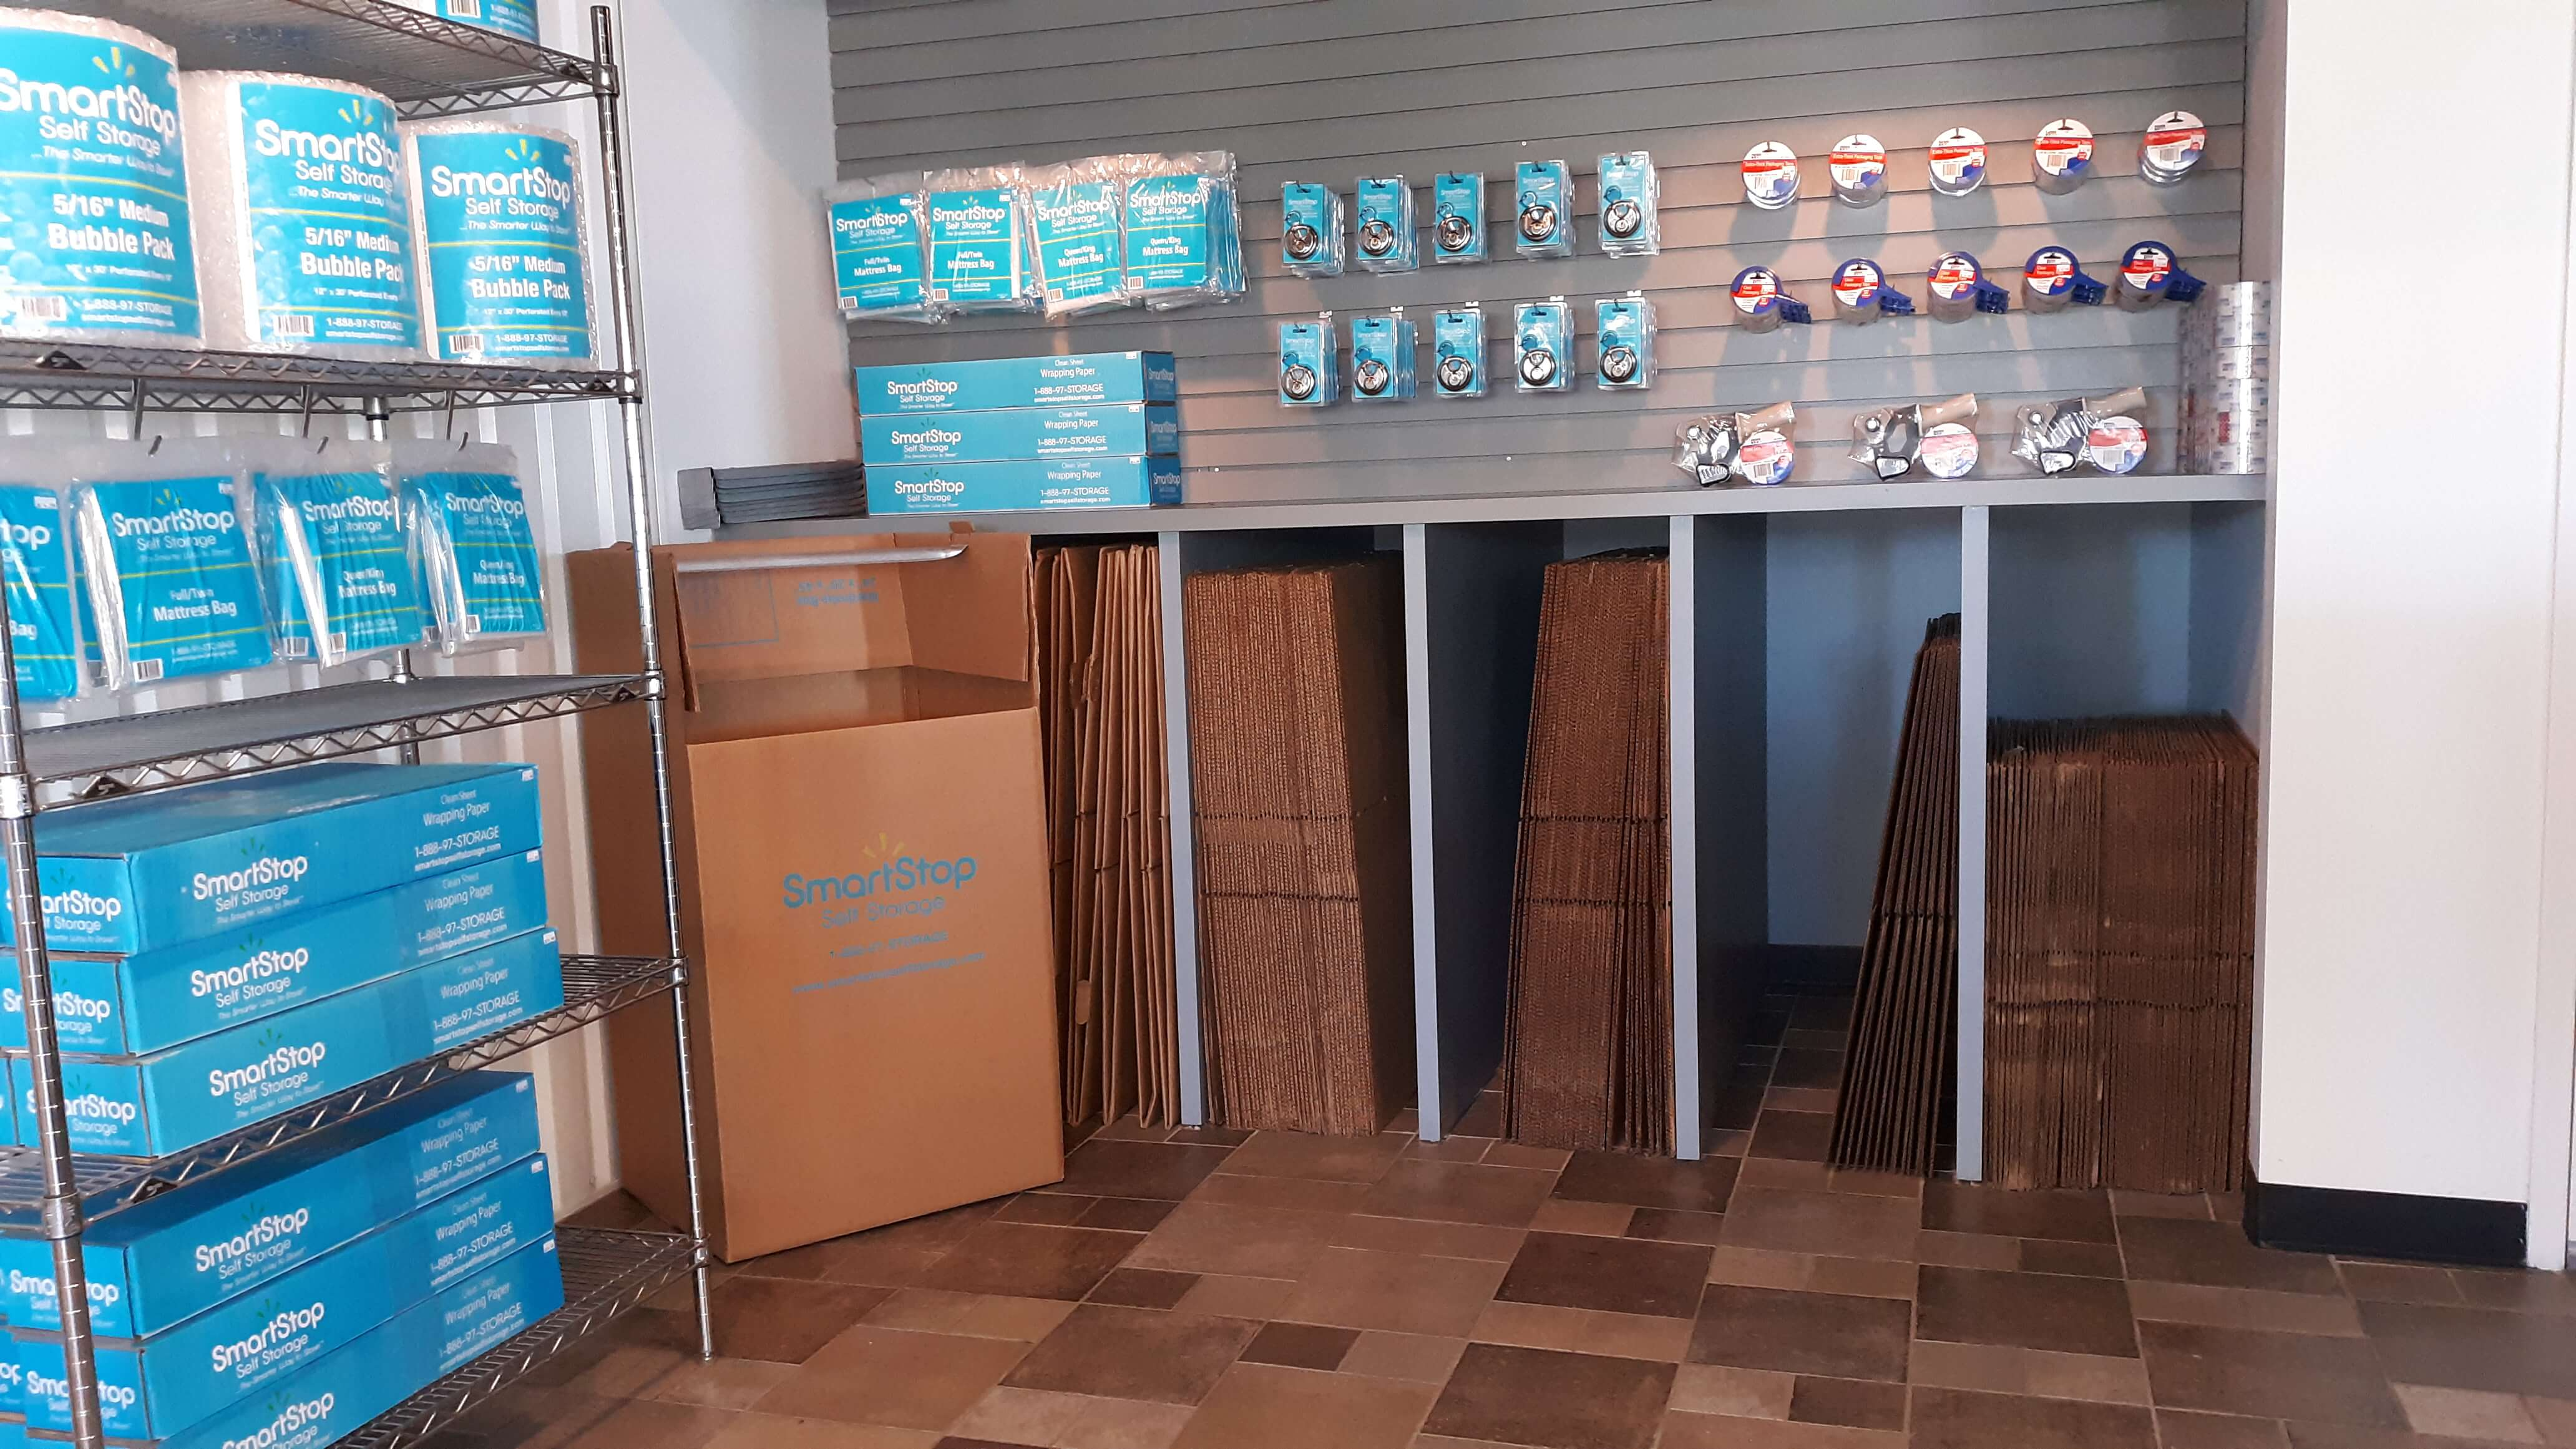 Available moving supplies for sale within front office at Smart Stop Self Storage facility at 23250 Westheimer Parkway, Katy Texas